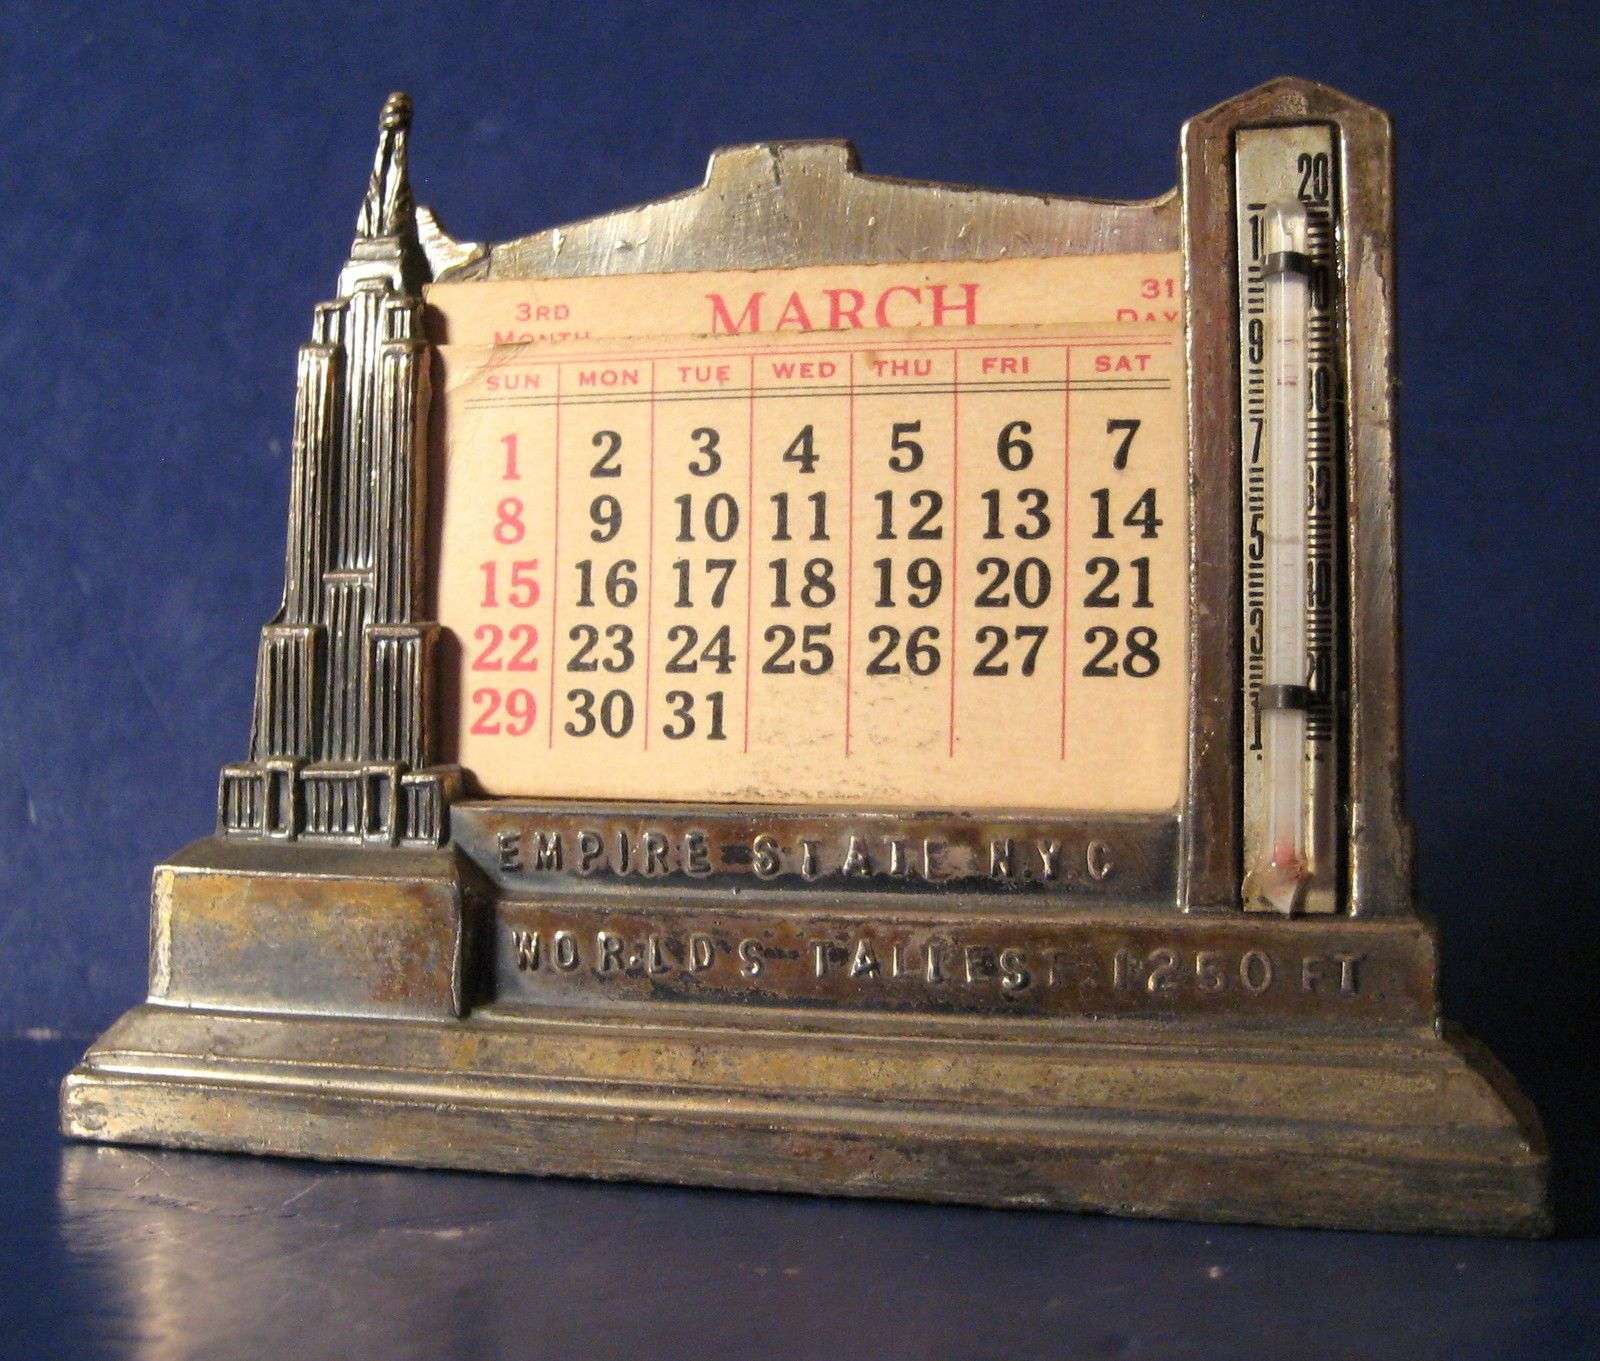 Vintage Souvenir Building Lead Empire State Building Intended For Calendar Empire State Building